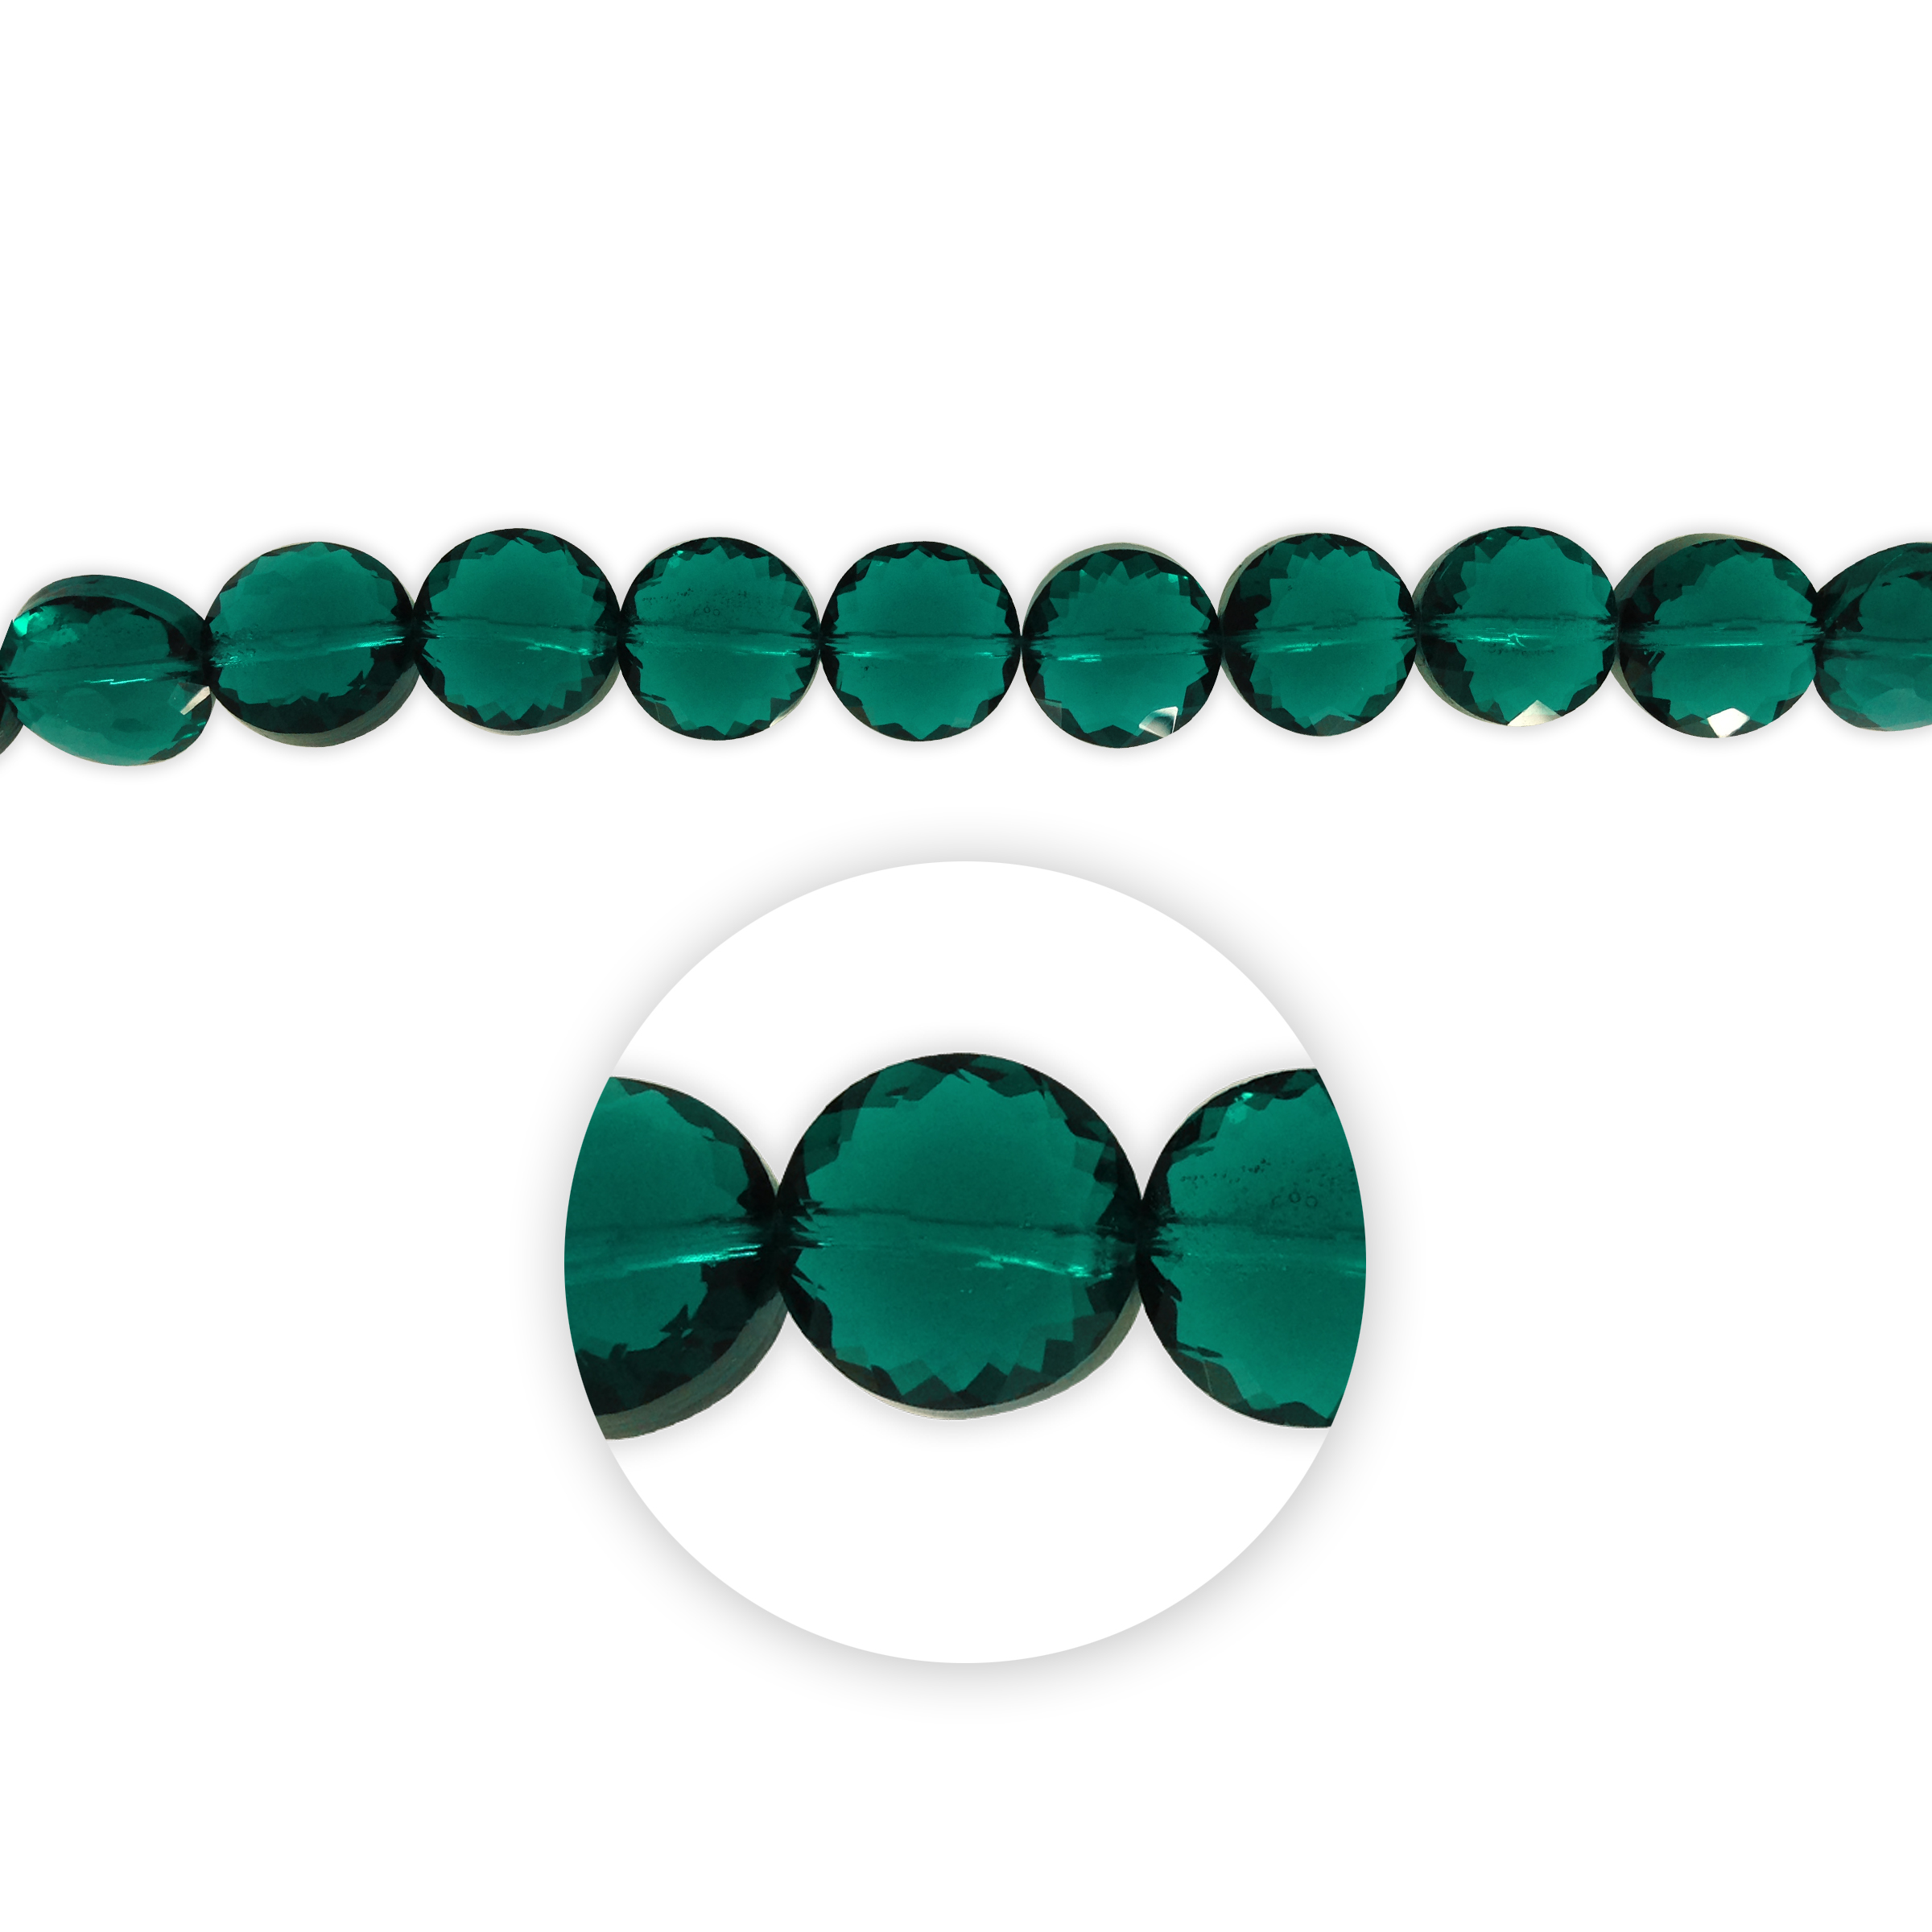 Blue Moon Beads 7\u0022 Crystal Strand, Coin-Shaped with flower facets, Teal